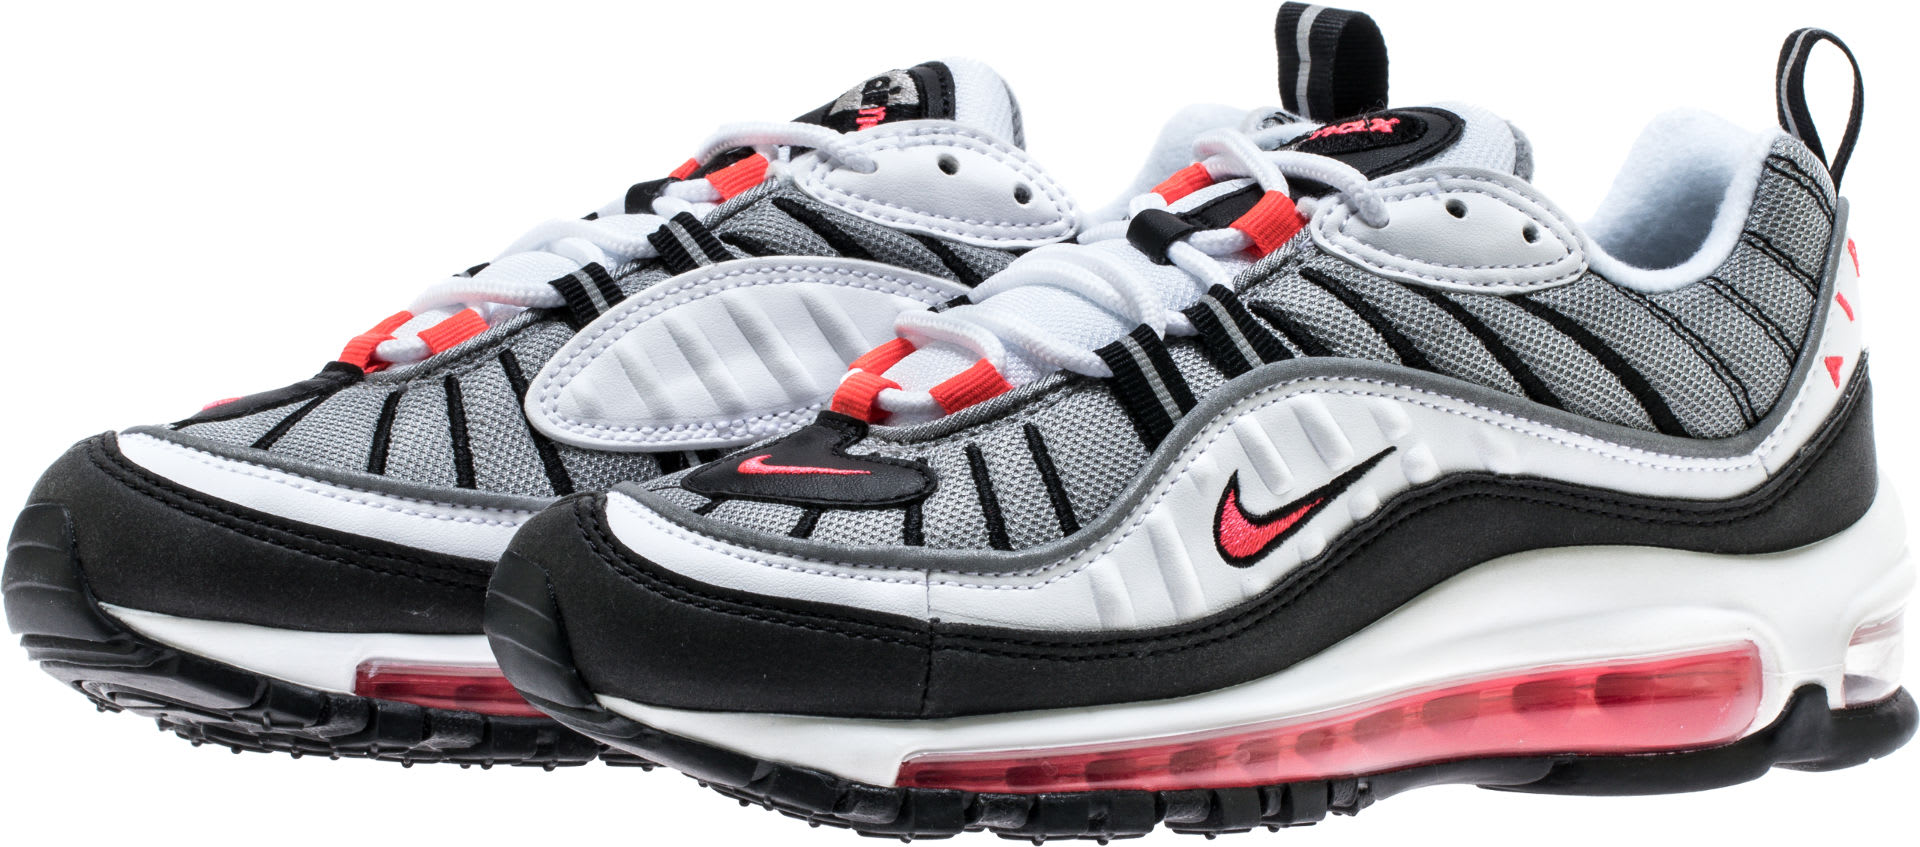 Nike WMNS Air Max 98 Solar Red Release Date AH6799-104 Front